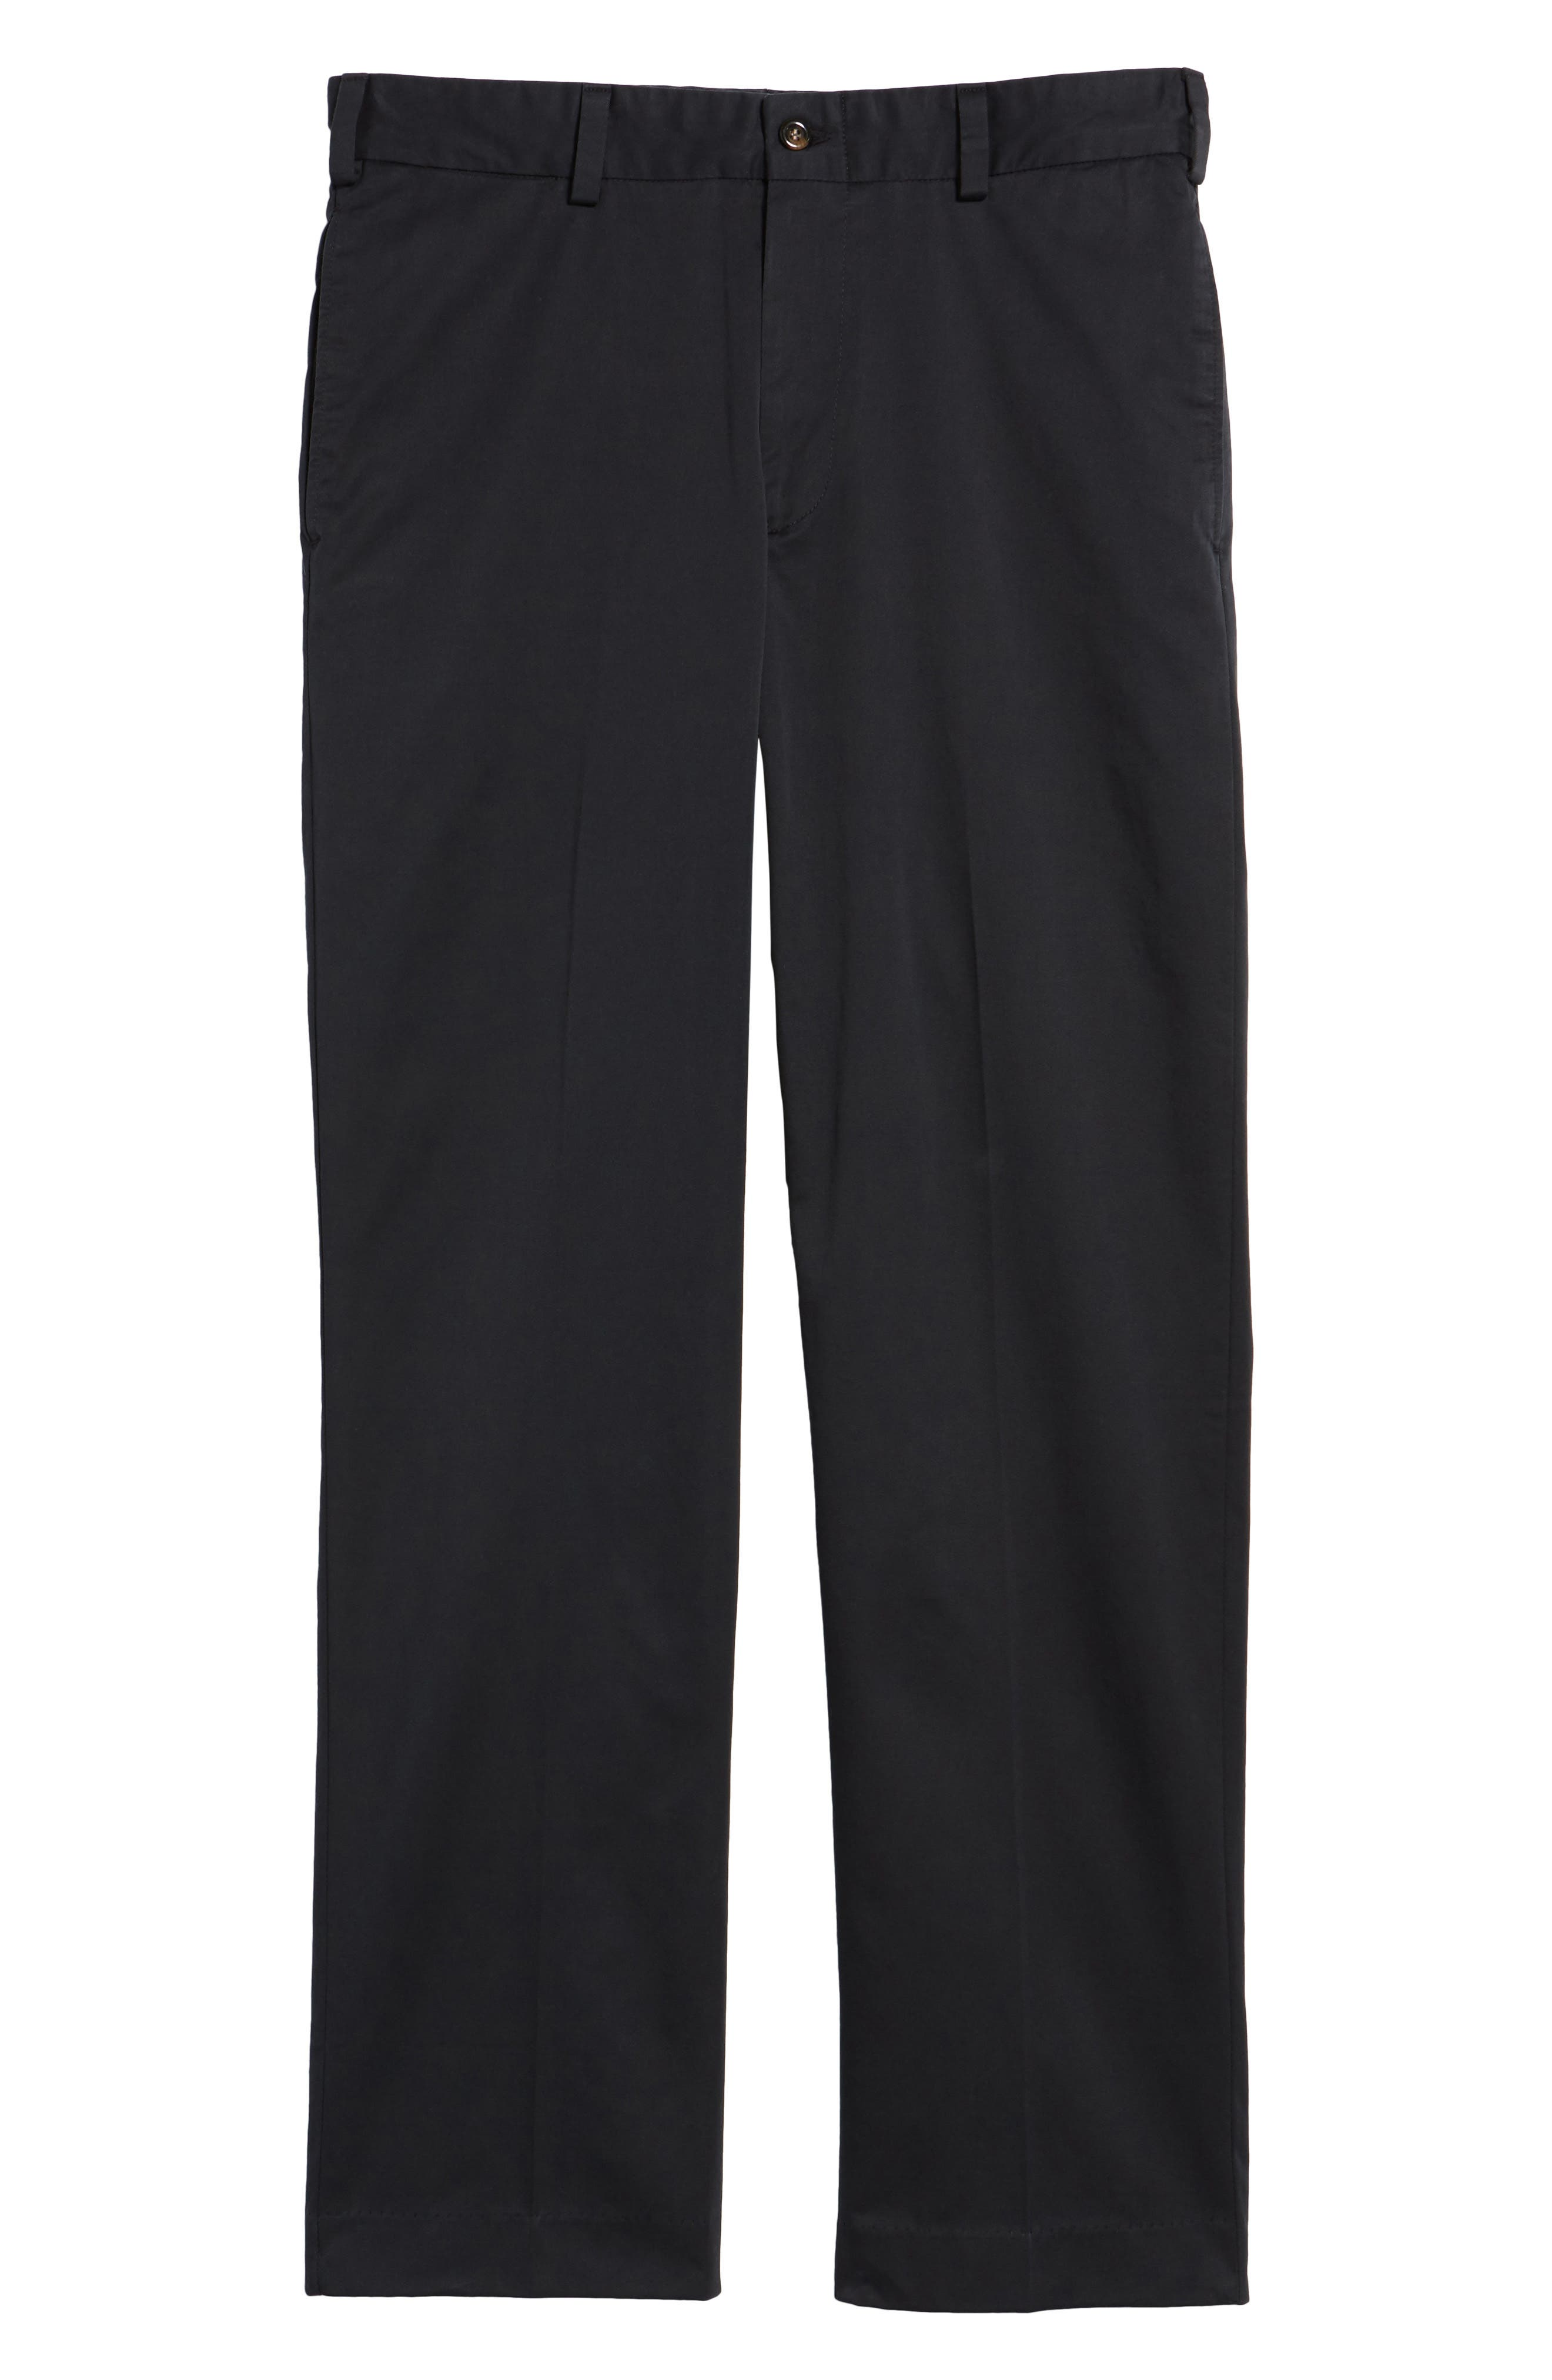 Classic Fit Chamois Cloth Pants,                             Alternate thumbnail 6, color,                             BLACK